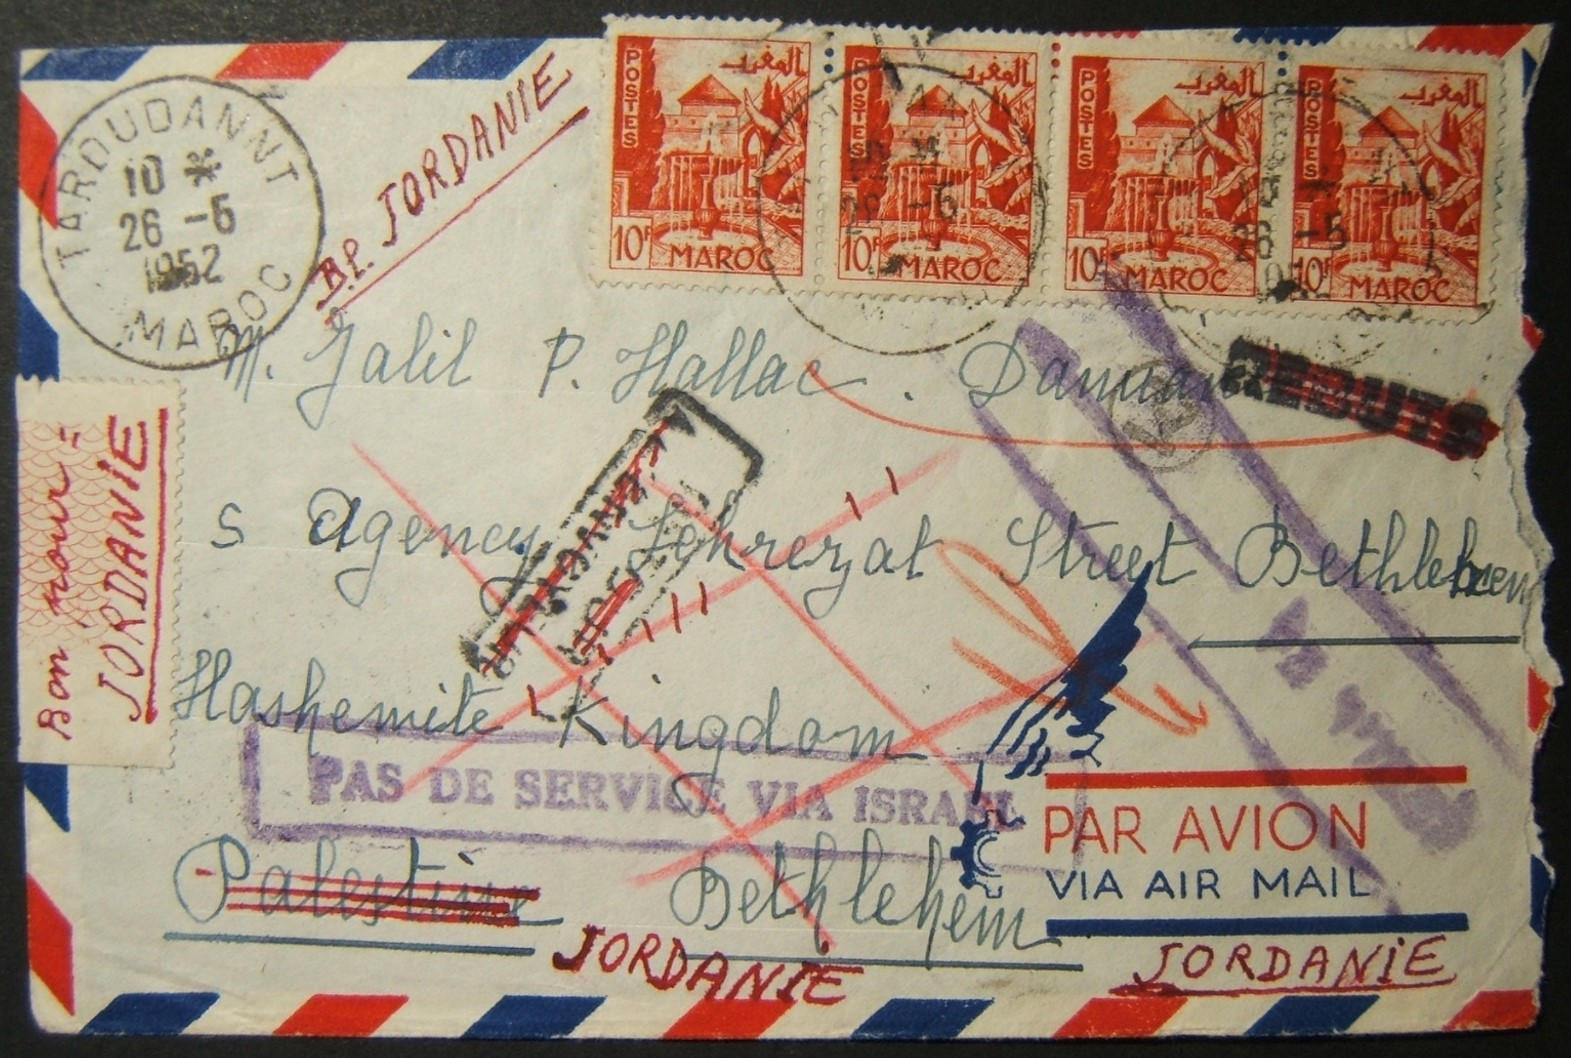 6/1952 Moroccan airmail to BETHLEHEM routed via Israel; censored & returned; resent